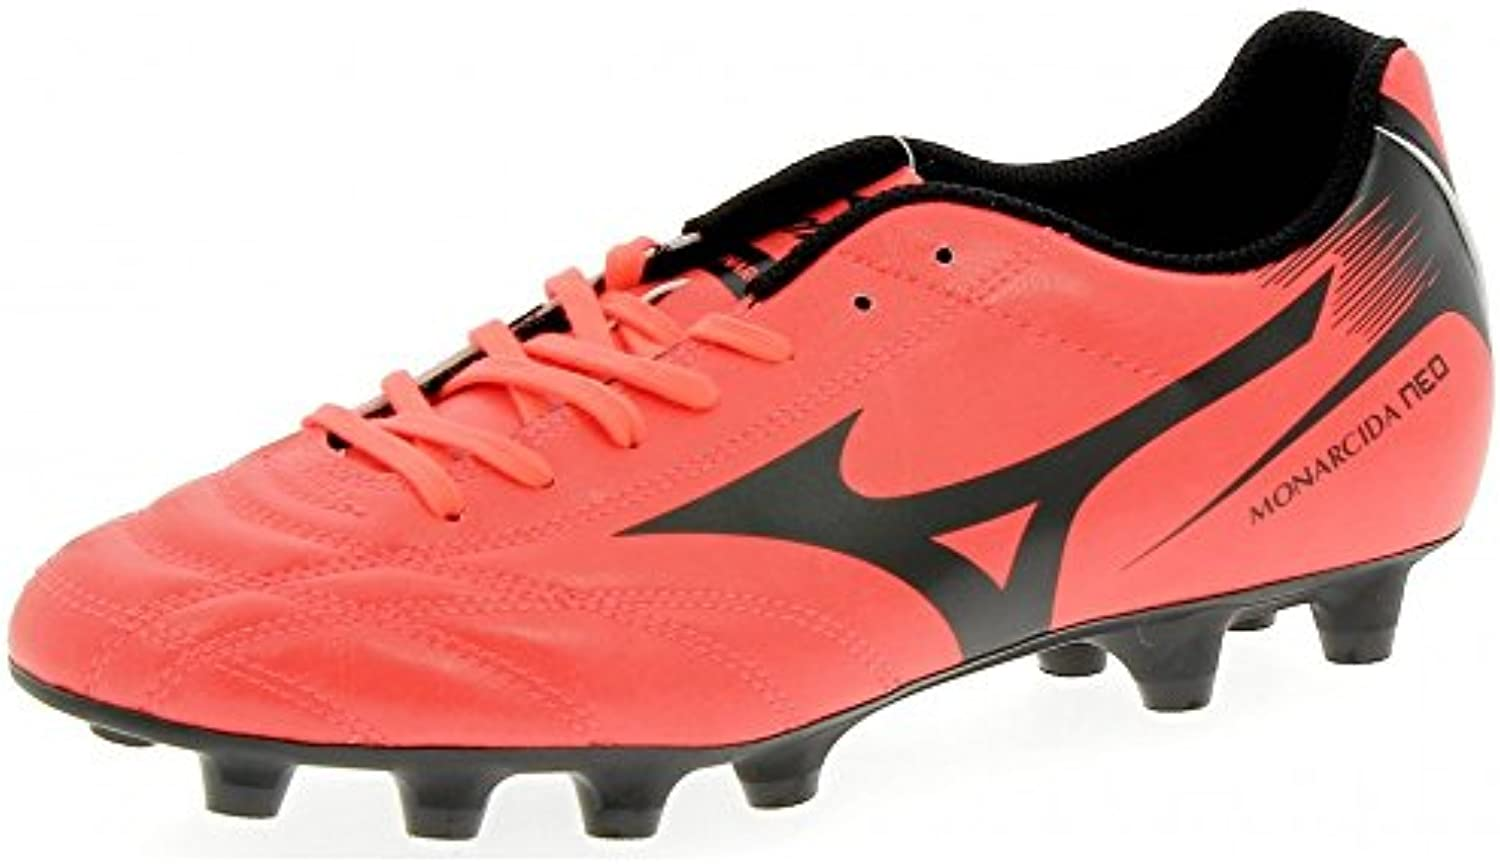 Monarcida Neo Moulded FG Football Boots   Fiery Coral/Black   size 8.5